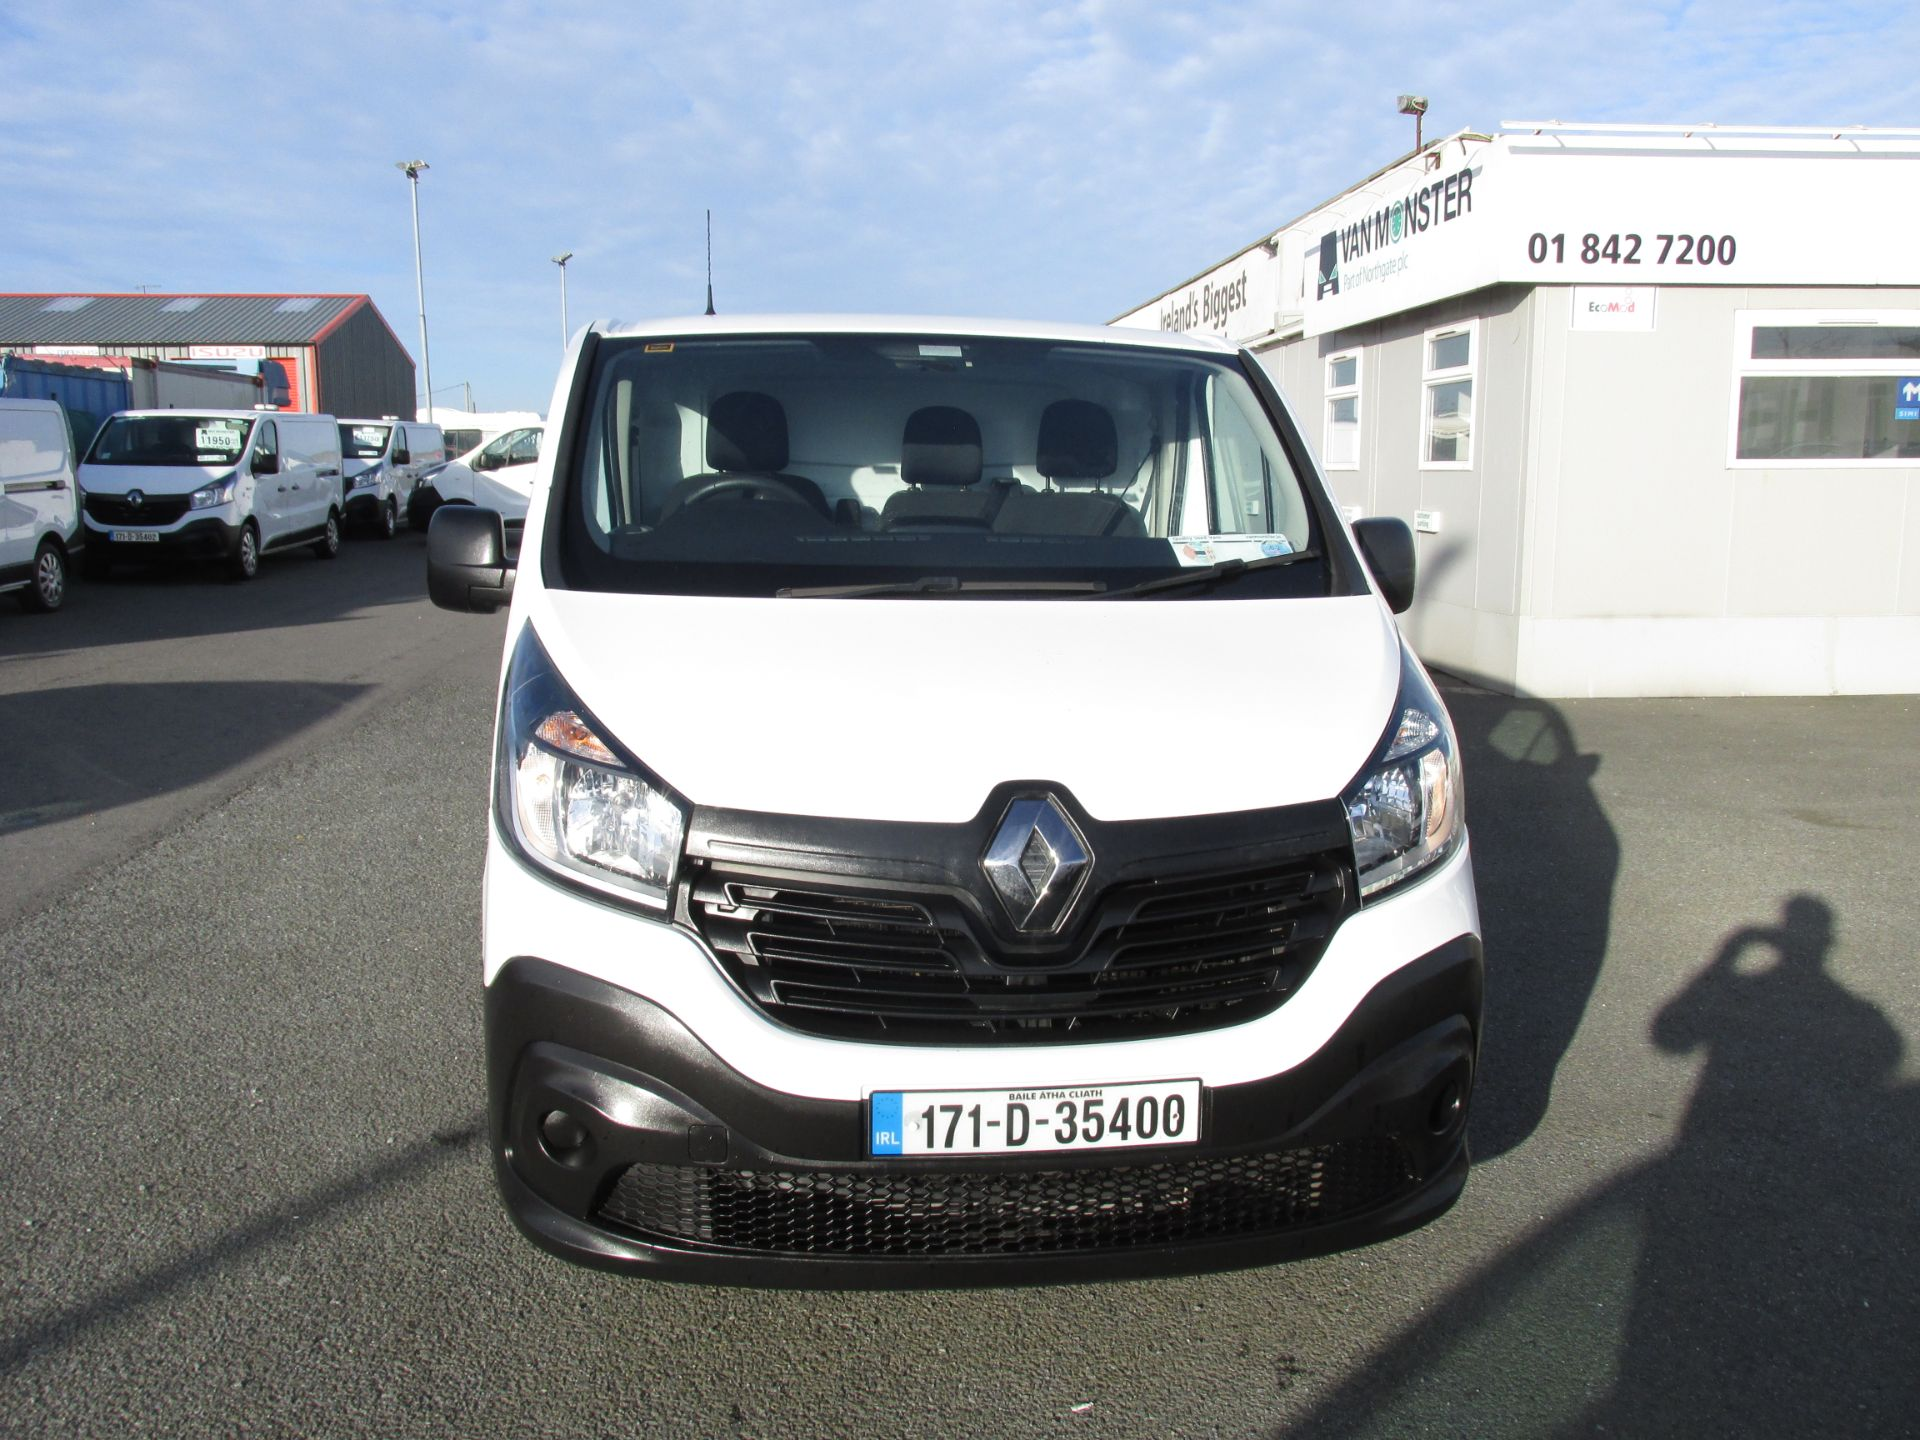 2017 Renault Trafic LL29 DCI 120 Business 3DR (171D35400) Image 2